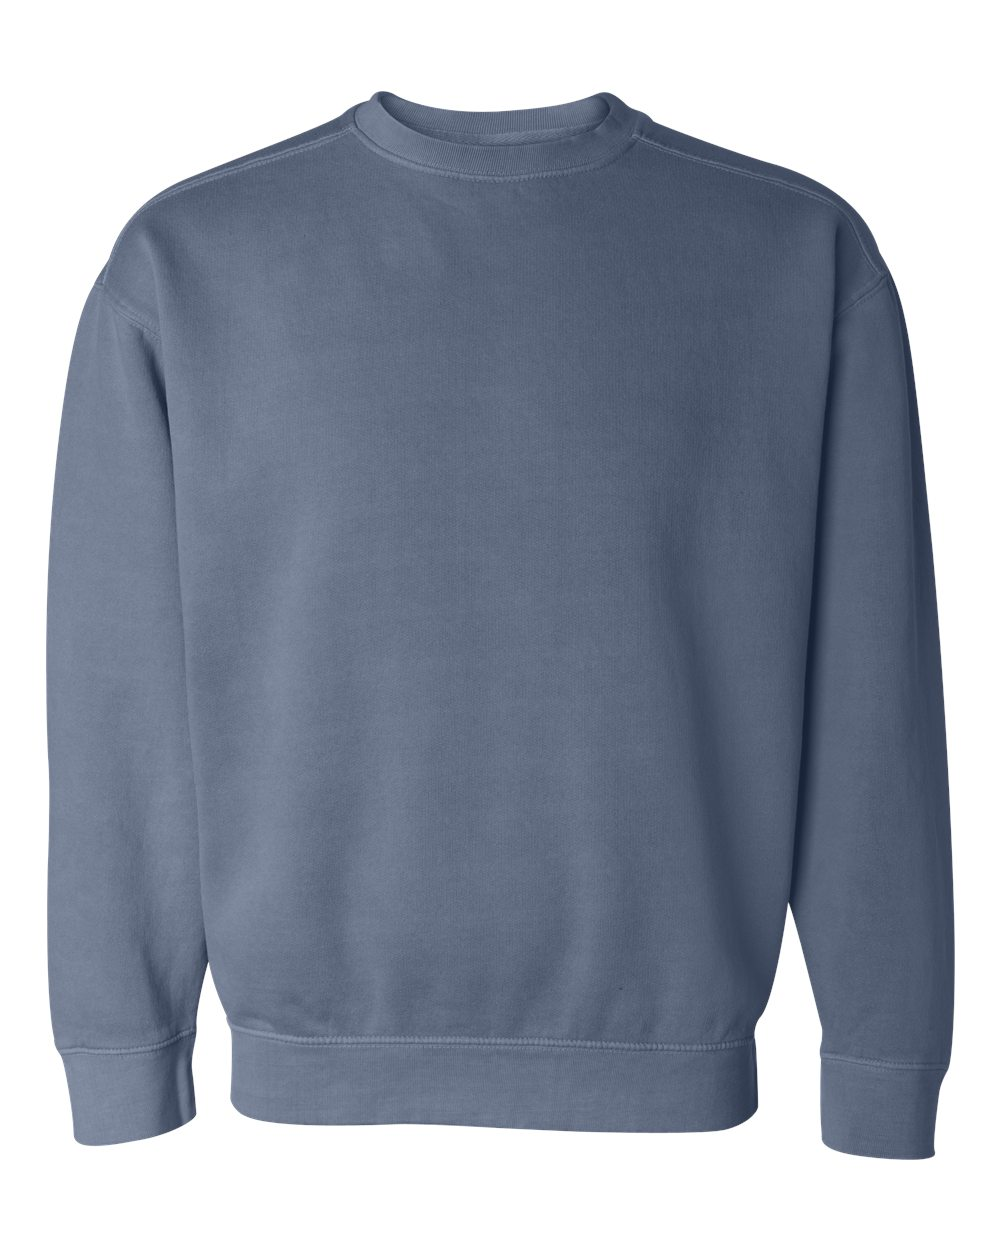 Comfort-Colors-Mens-Garment-Dyed-Ringspun-Crewneck-Sweatshirt-1566-up-to-3XL miniature 6